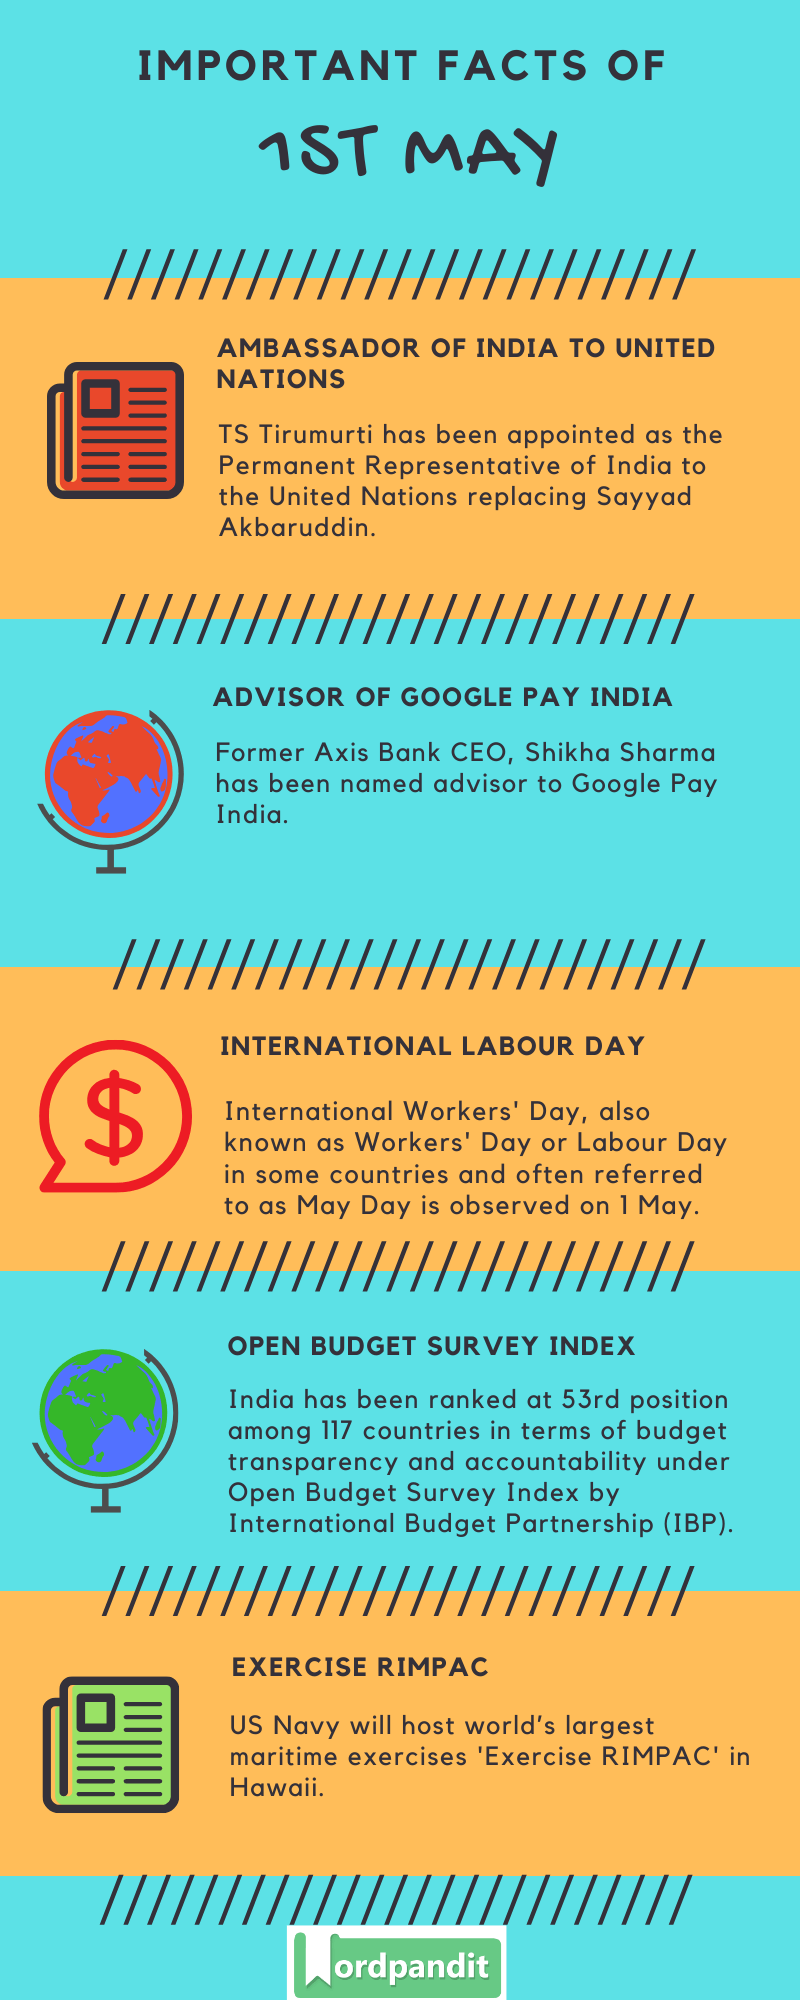 Daily Current Affairs 1 May 2020 Current Affairs Quiz 1 May 2020 Current Affairs Infographic